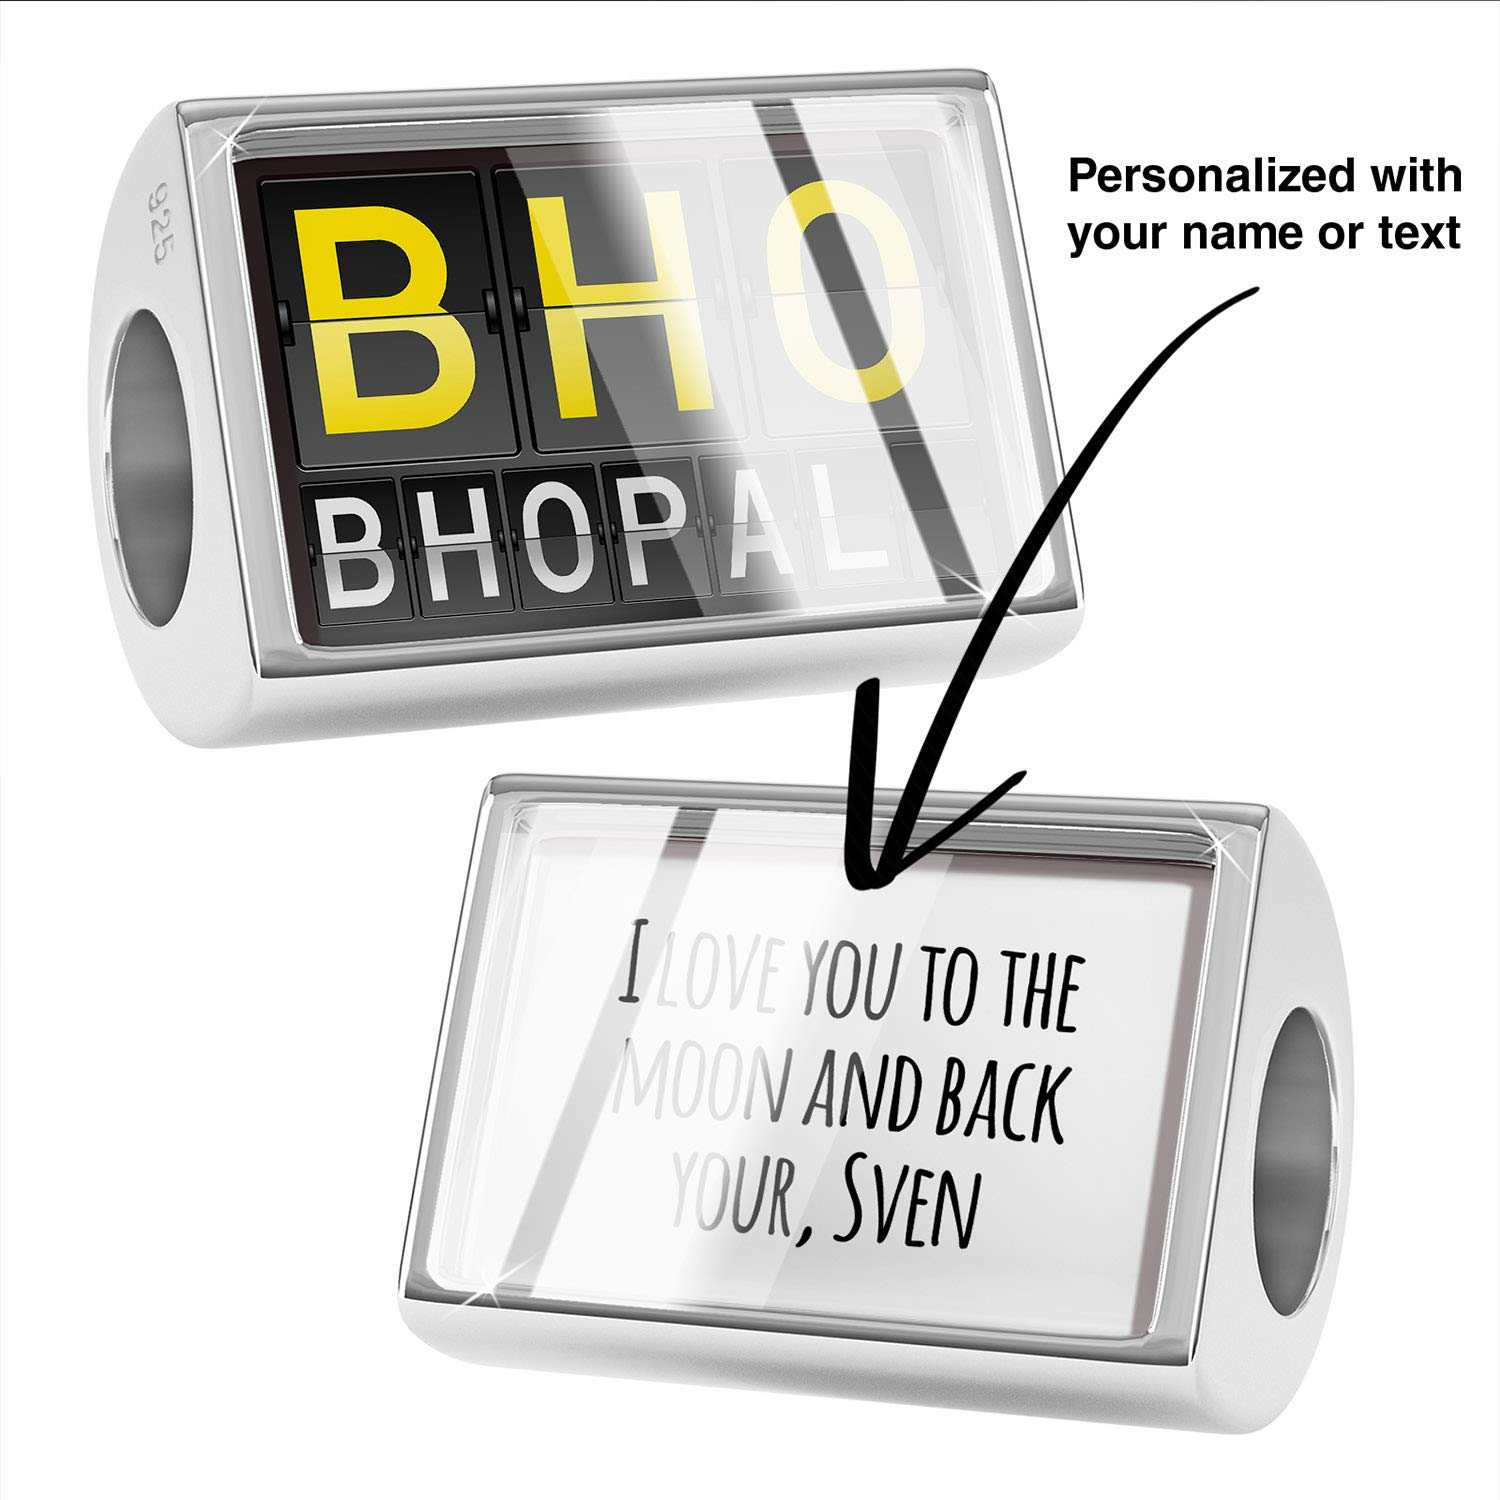 NEONBLOND Custom Charm BHO Airport Code for Bhopal 925 Sterling Silver Bead